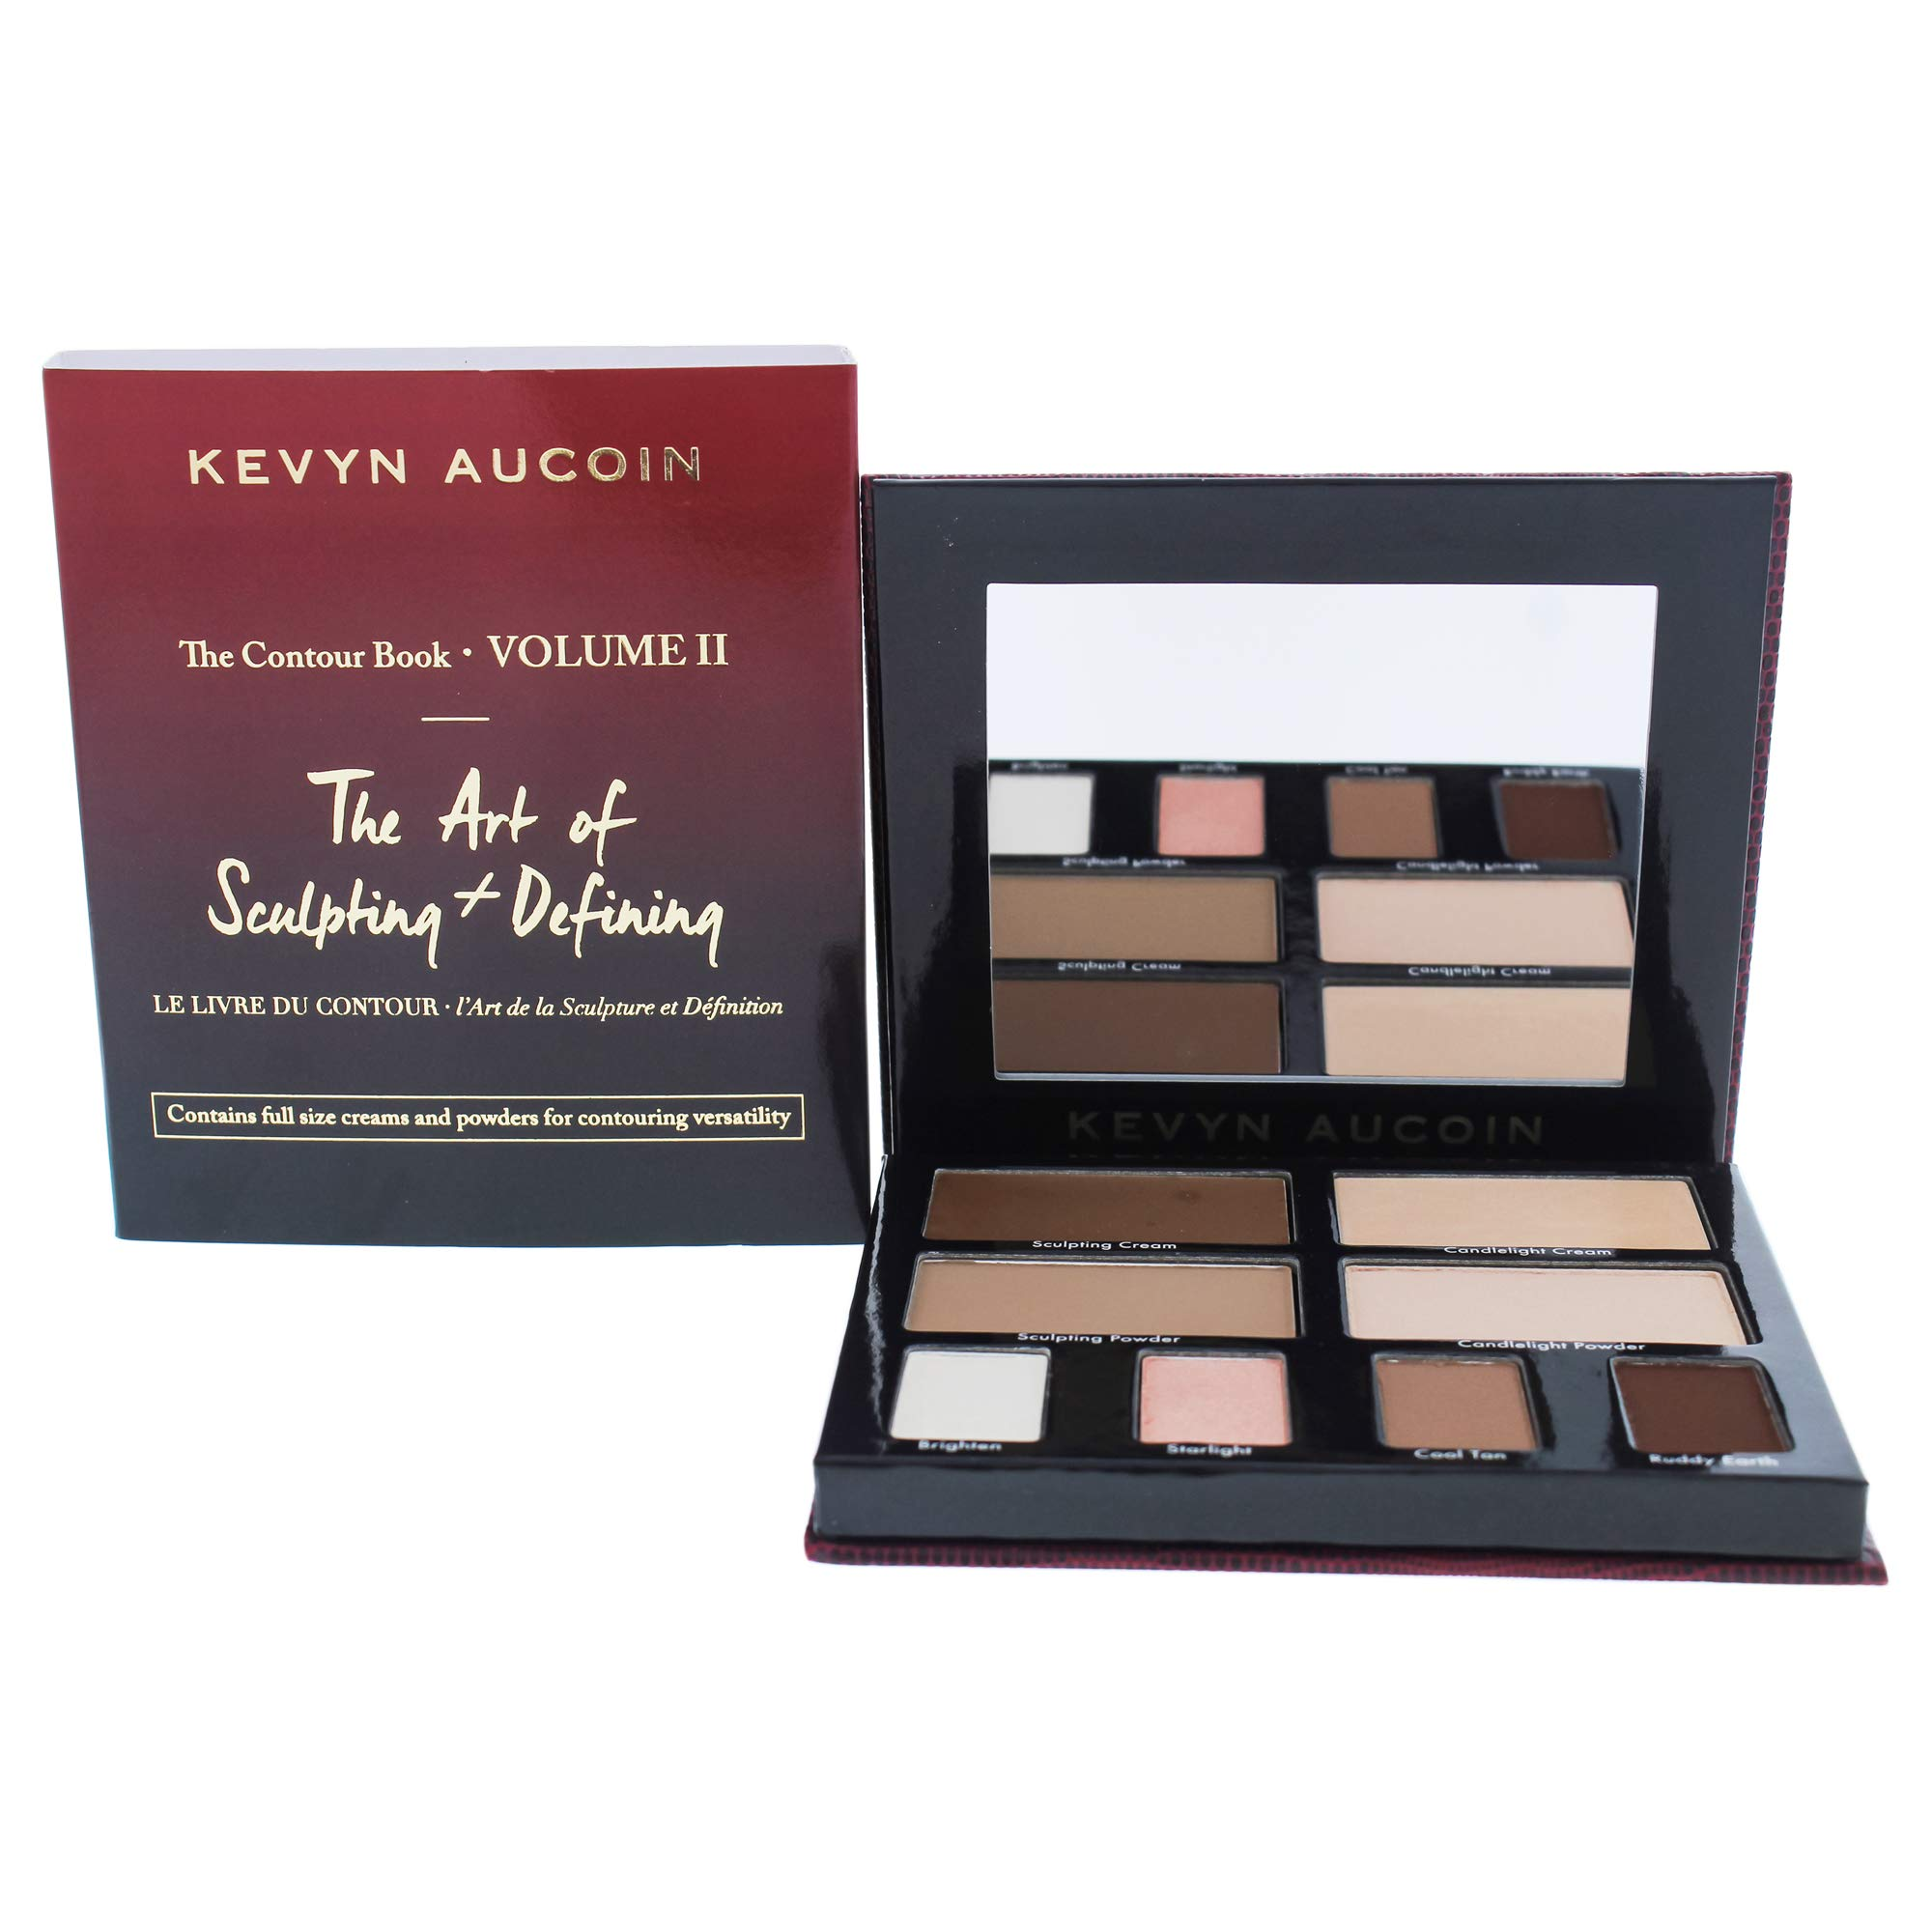 Kevyn Aucoin The Contour Book - The Art Of Sculpting Plus Defining Volume II by Kevyn Aucoin